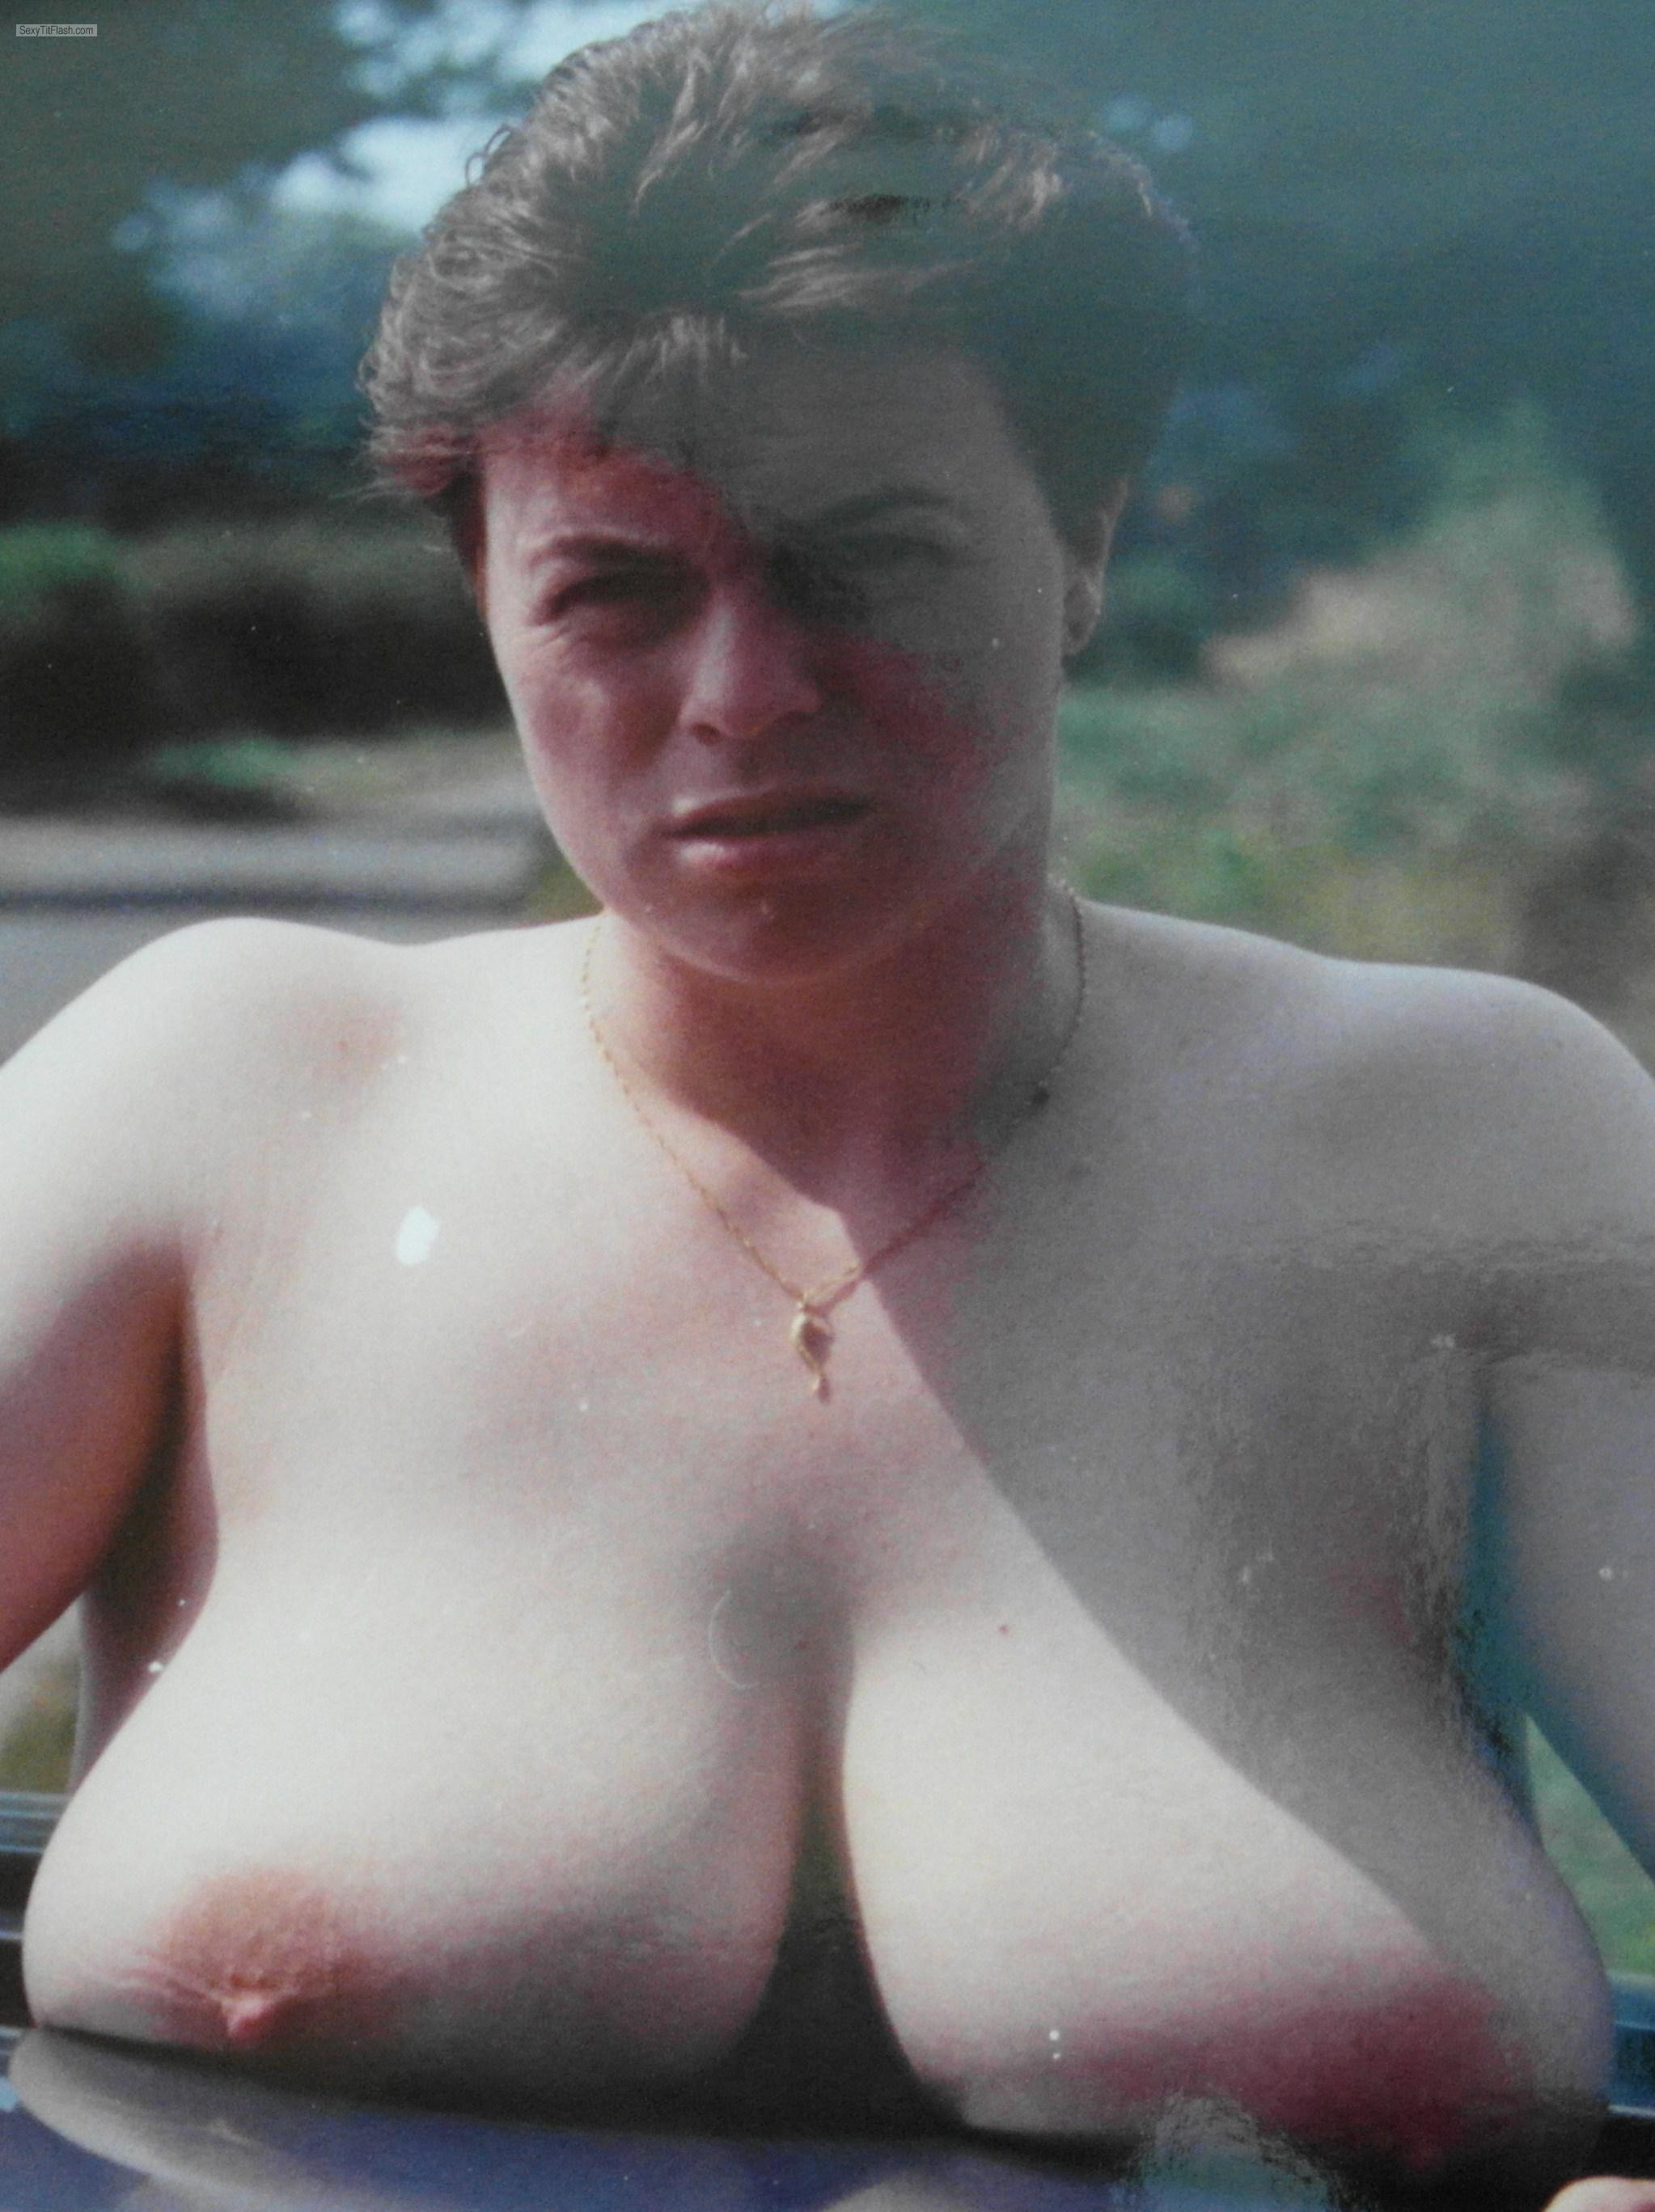 Tit Flash: My Friend's Very Big Tits - Topless Retro Nude from United Kingdom